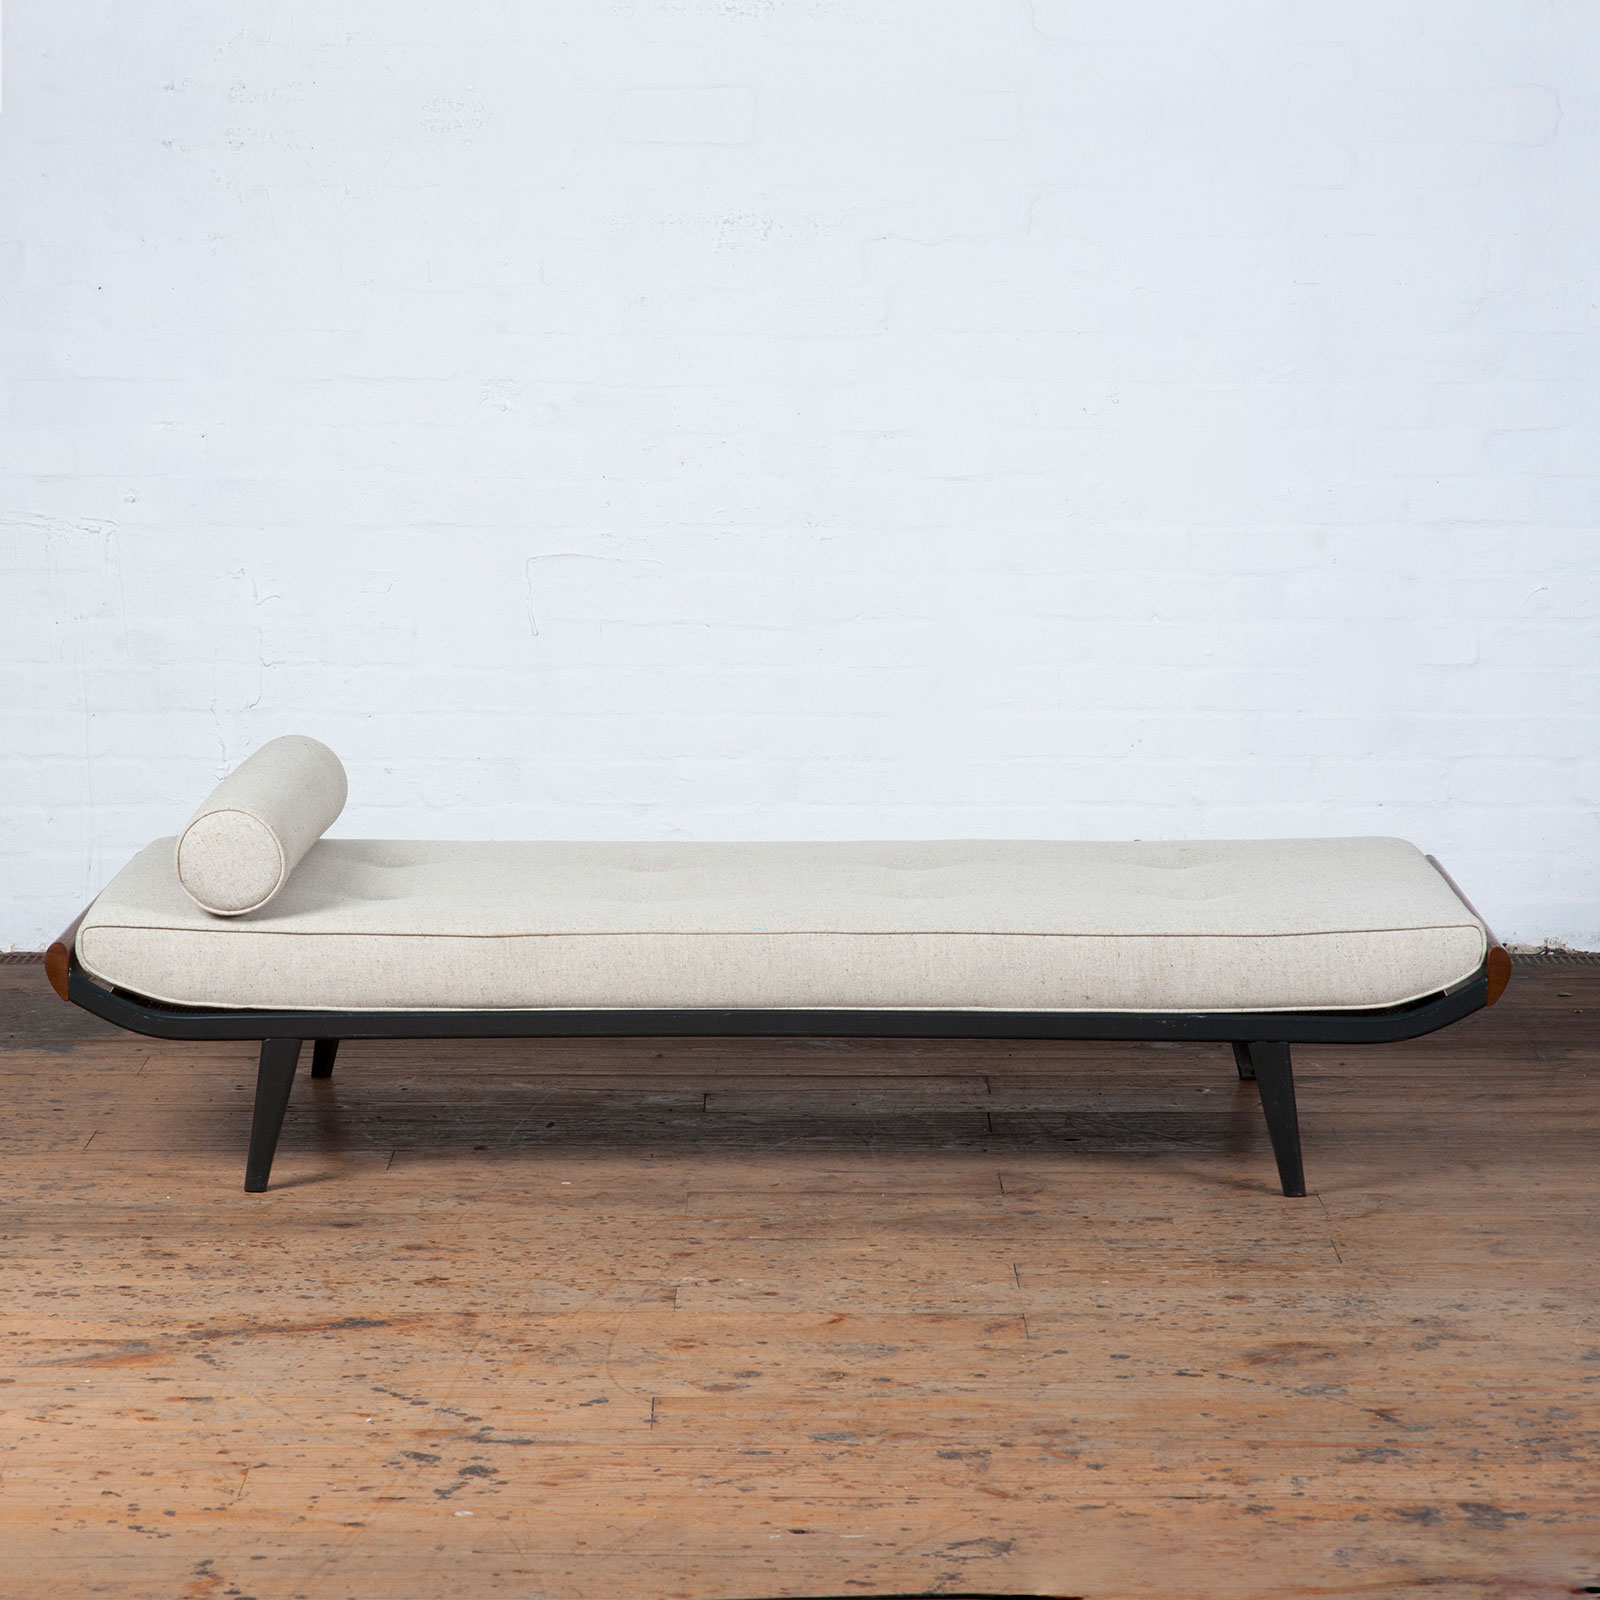 Cleopatra Daybed By Andre Cordemeyer For Auping With Gunmetal Frame, 1950s, The Netherlands Hero